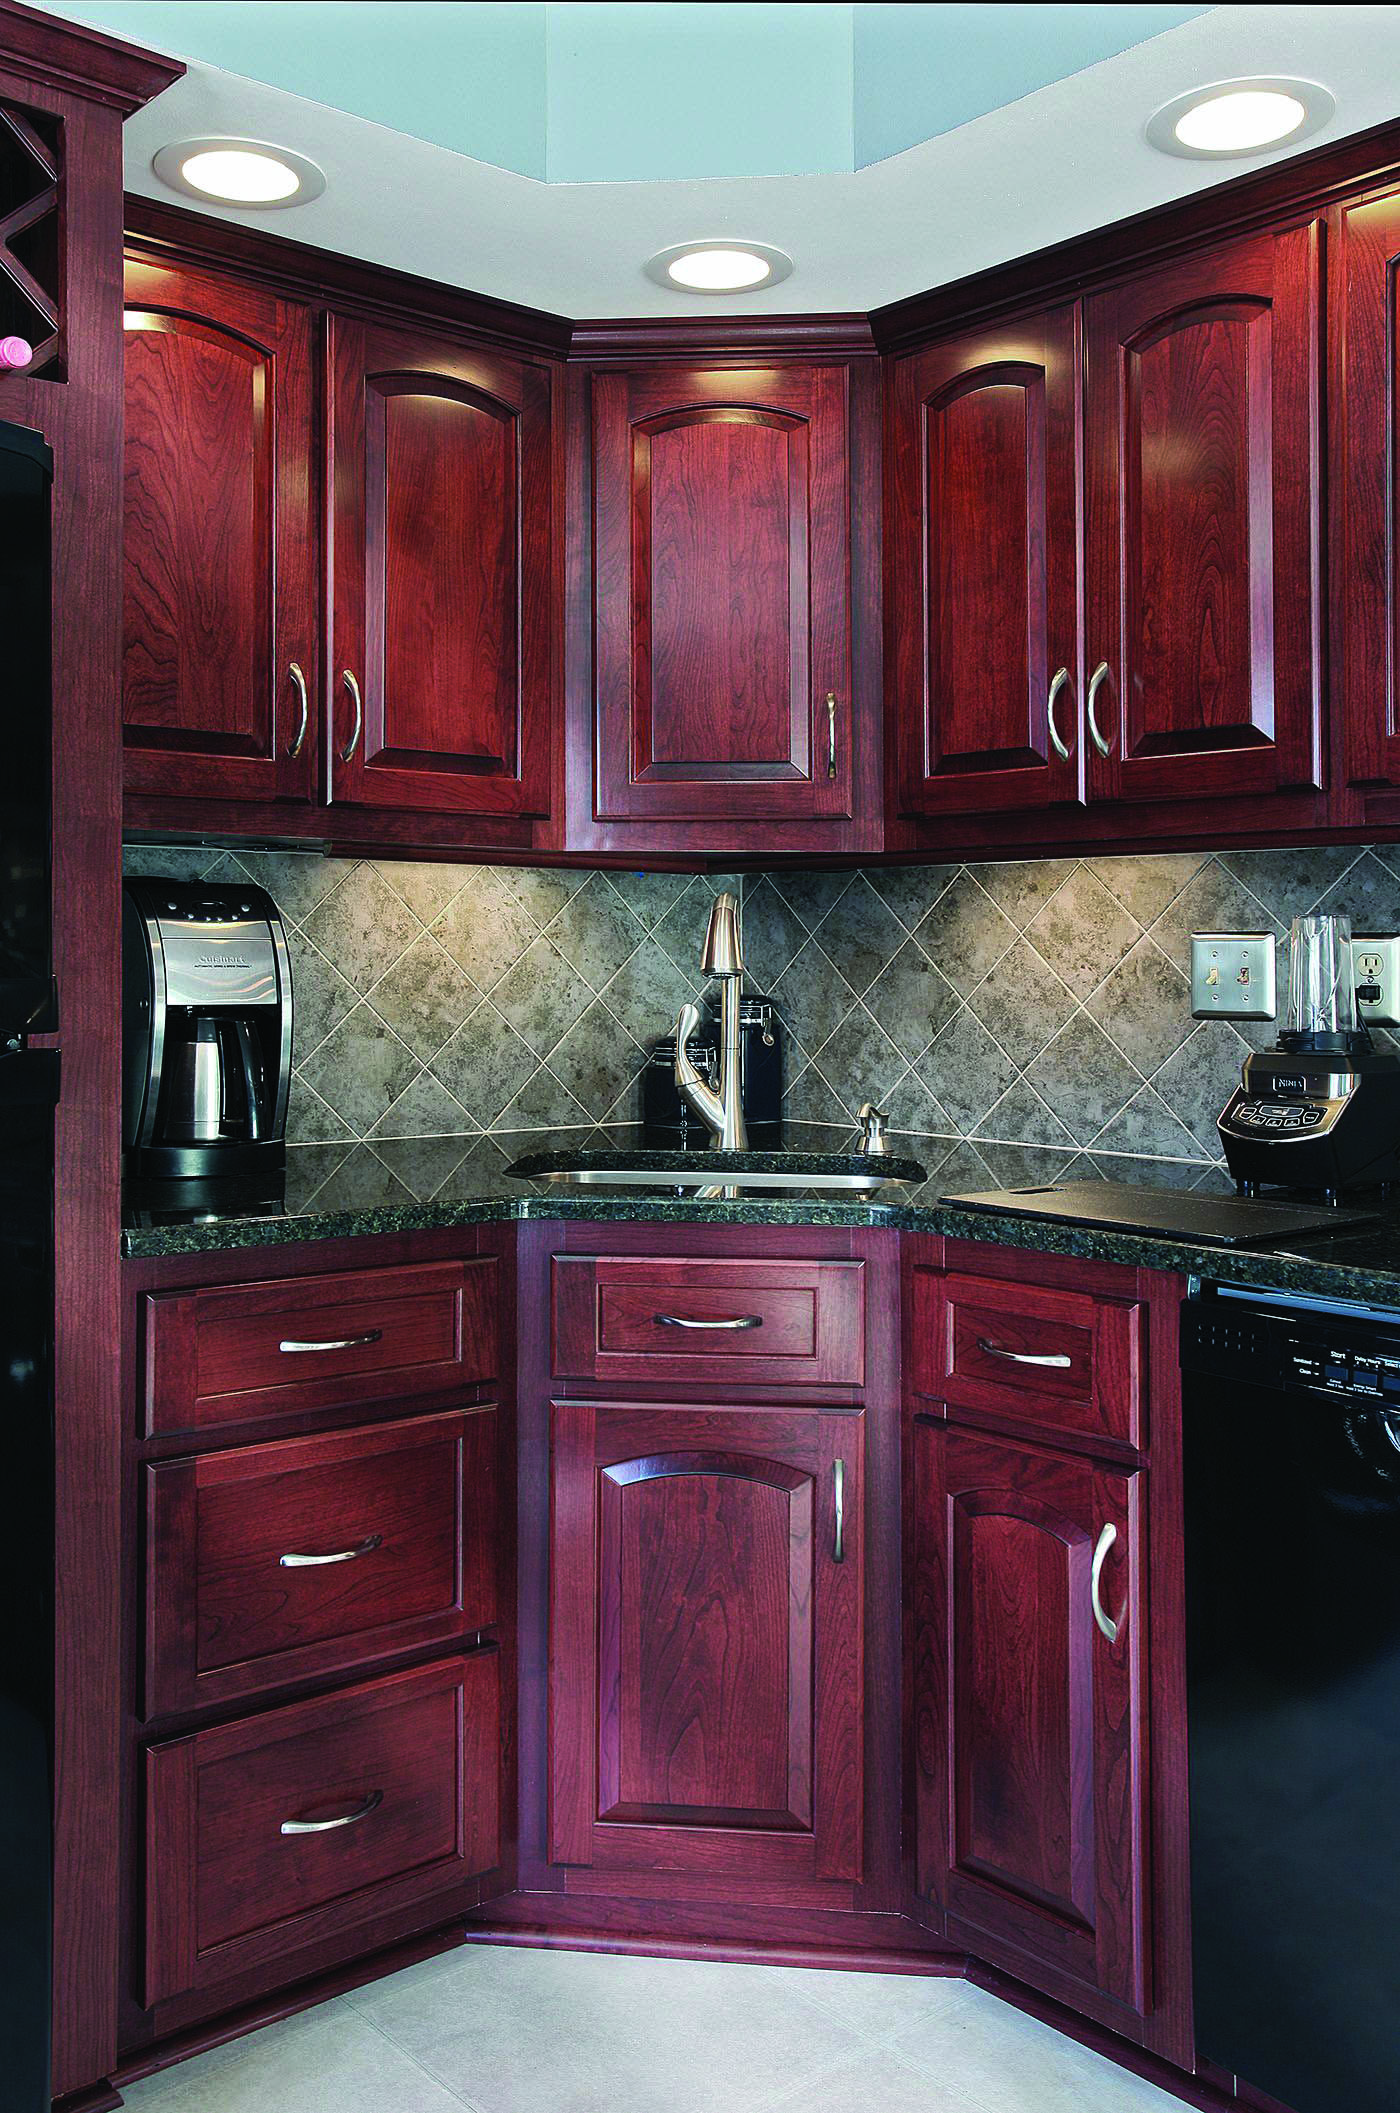 Outstanding Cherry Java Kitchen Cabinets That Will Blow Your Mind Cherry Cabinets Kitchen Kitchen Renovation Kitchen Remodel